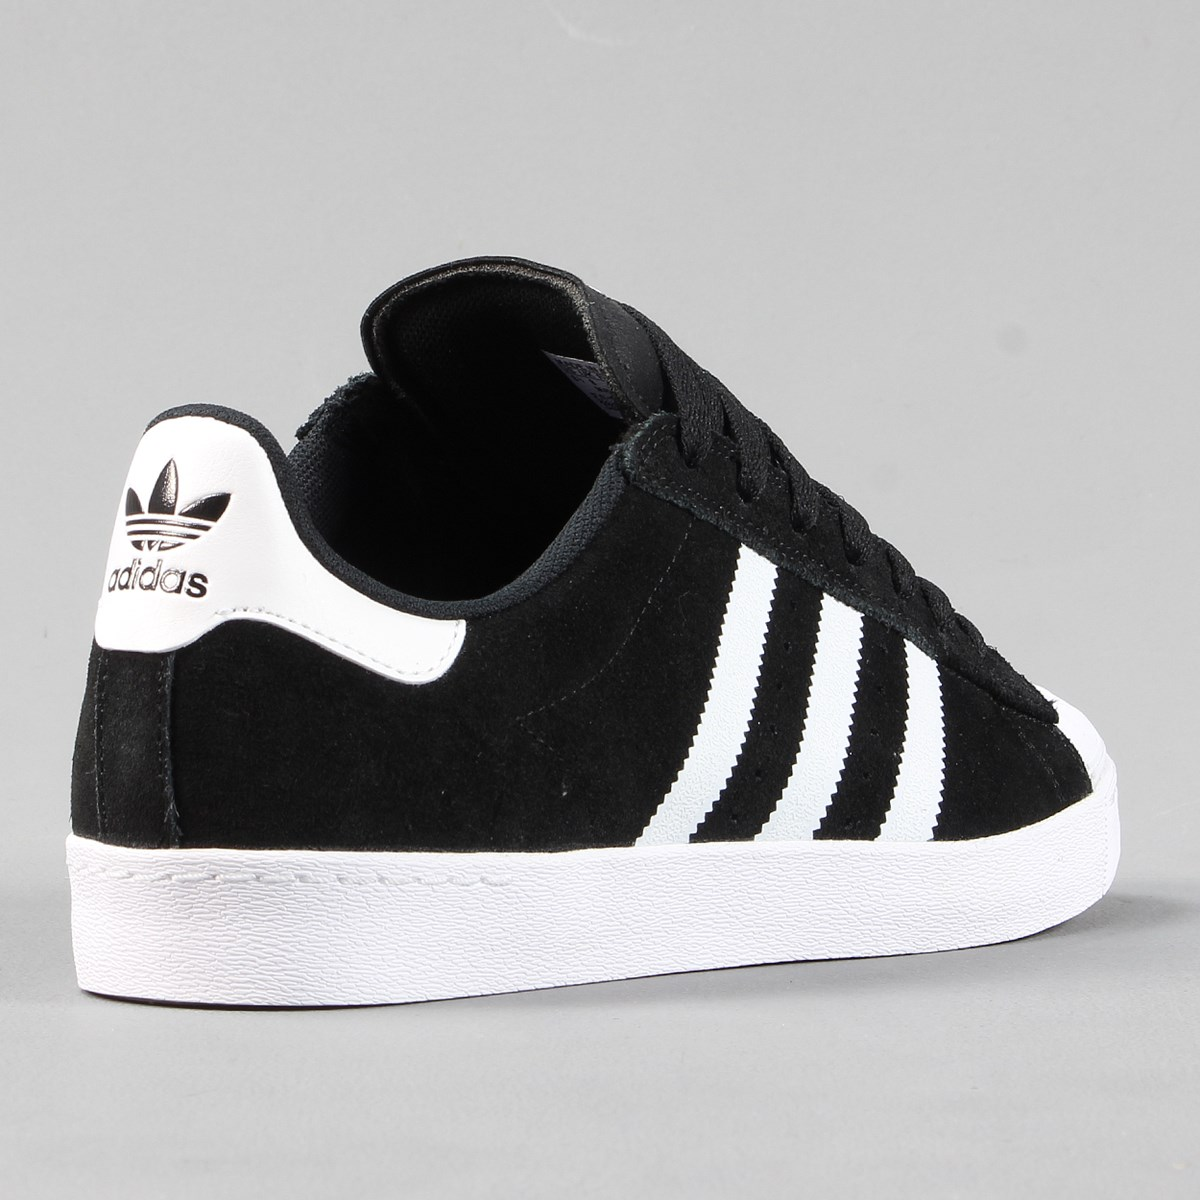 qdgiz Adidas superstar adv vulc skateboarding originals trainers black